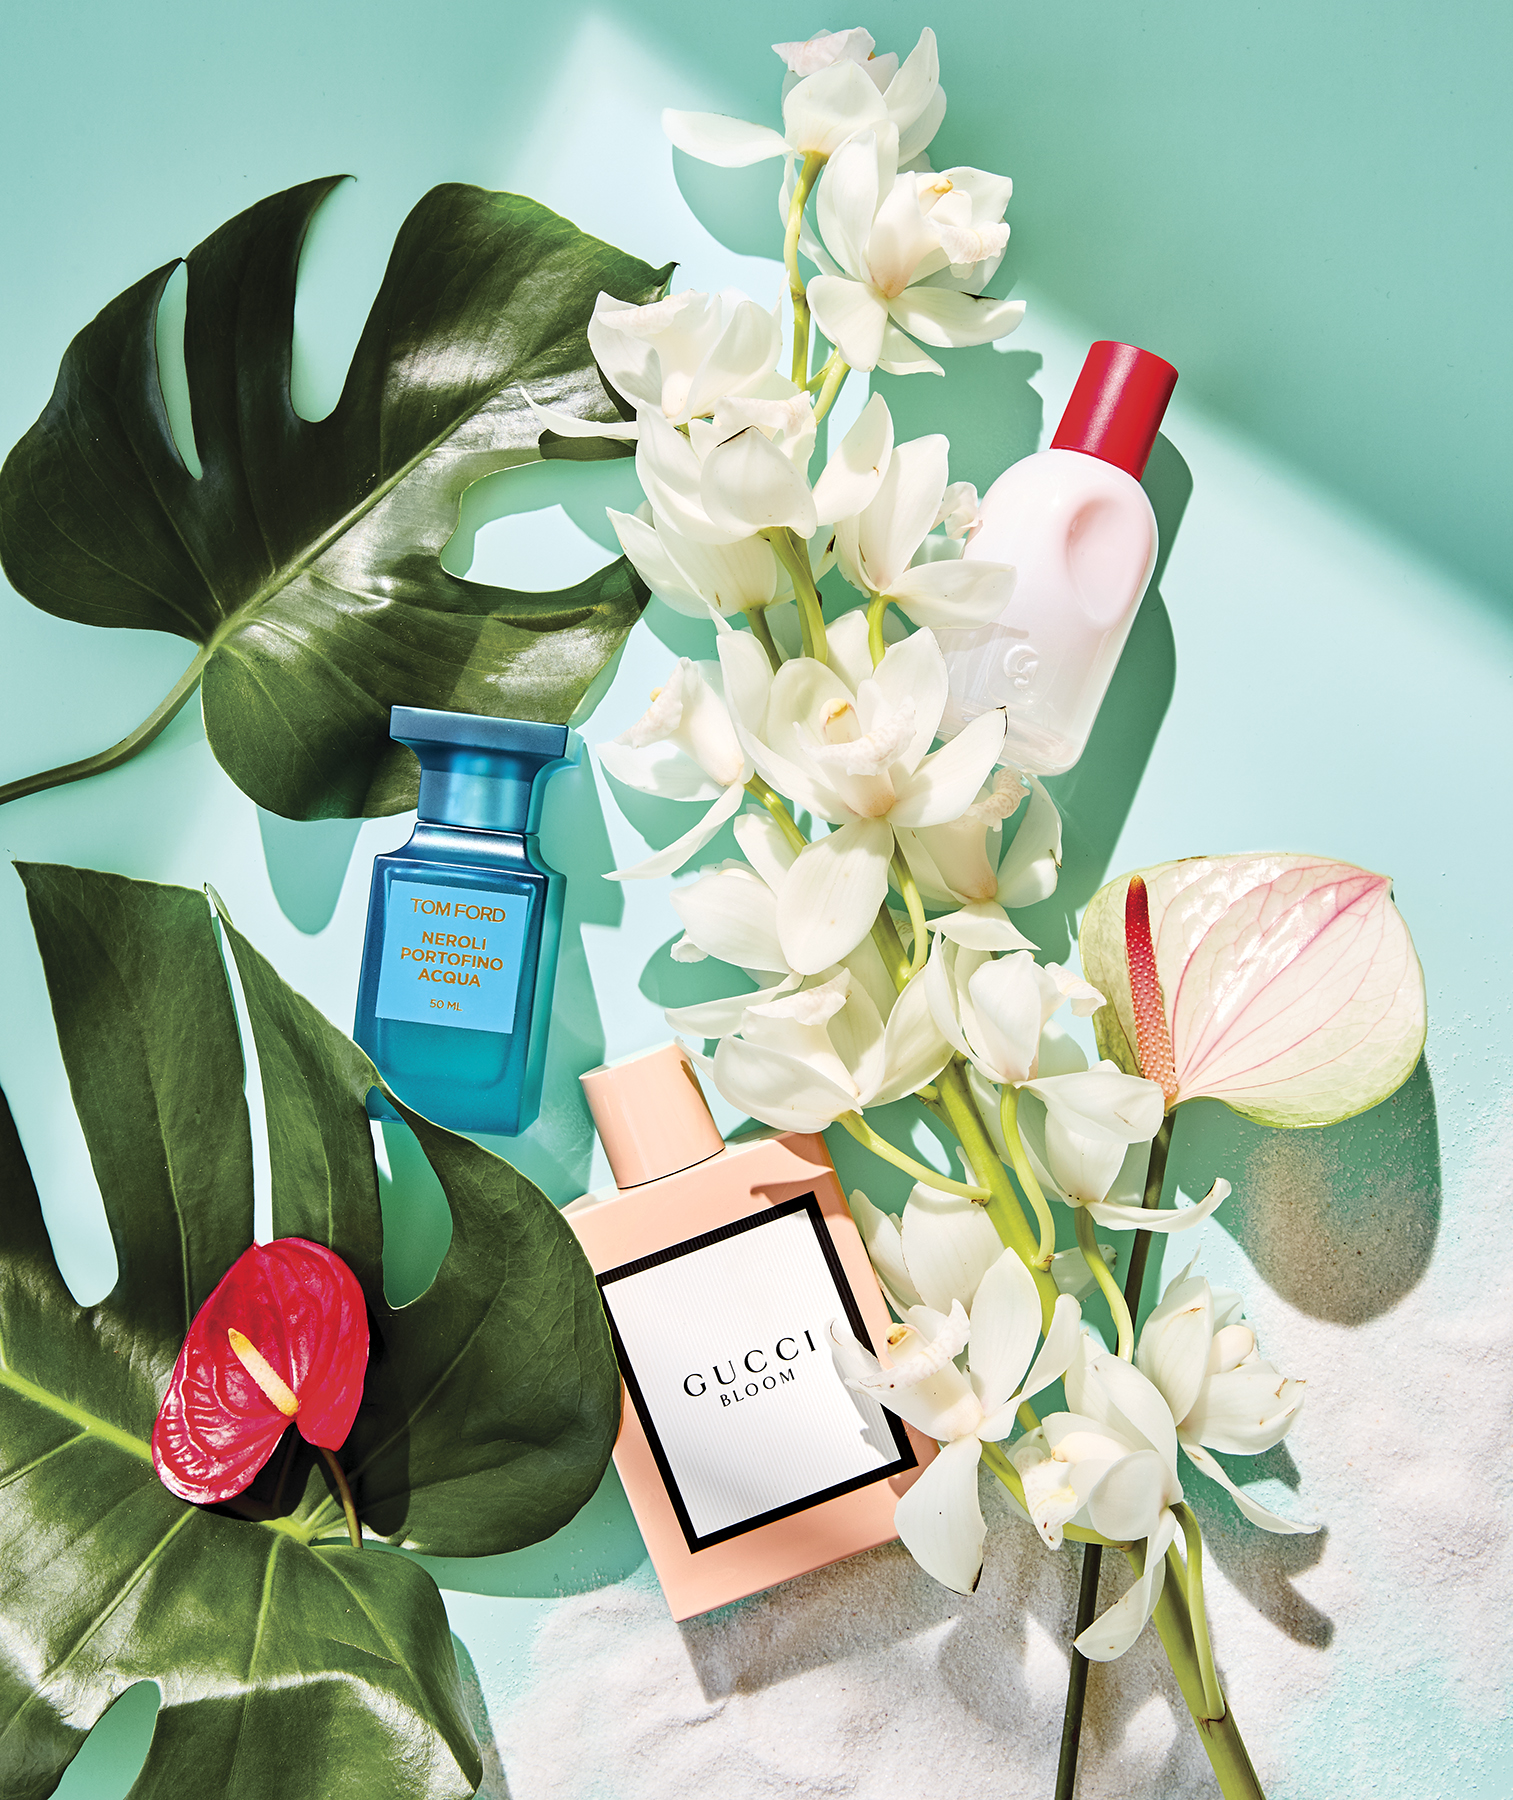 Tropical scents